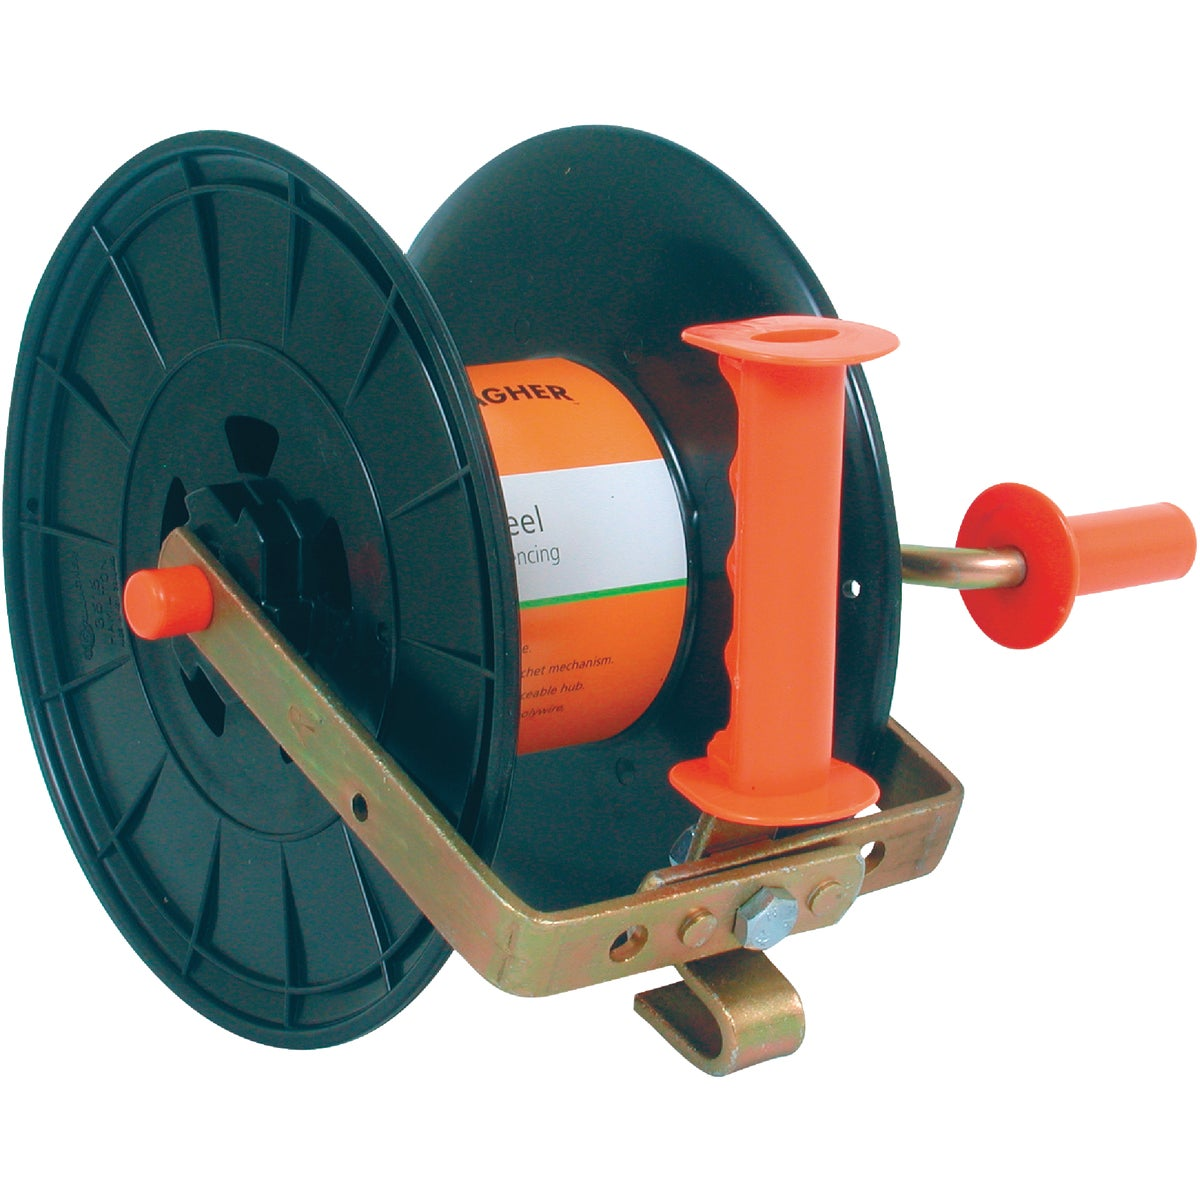 ECONO REEL - G61600 by Gallagher